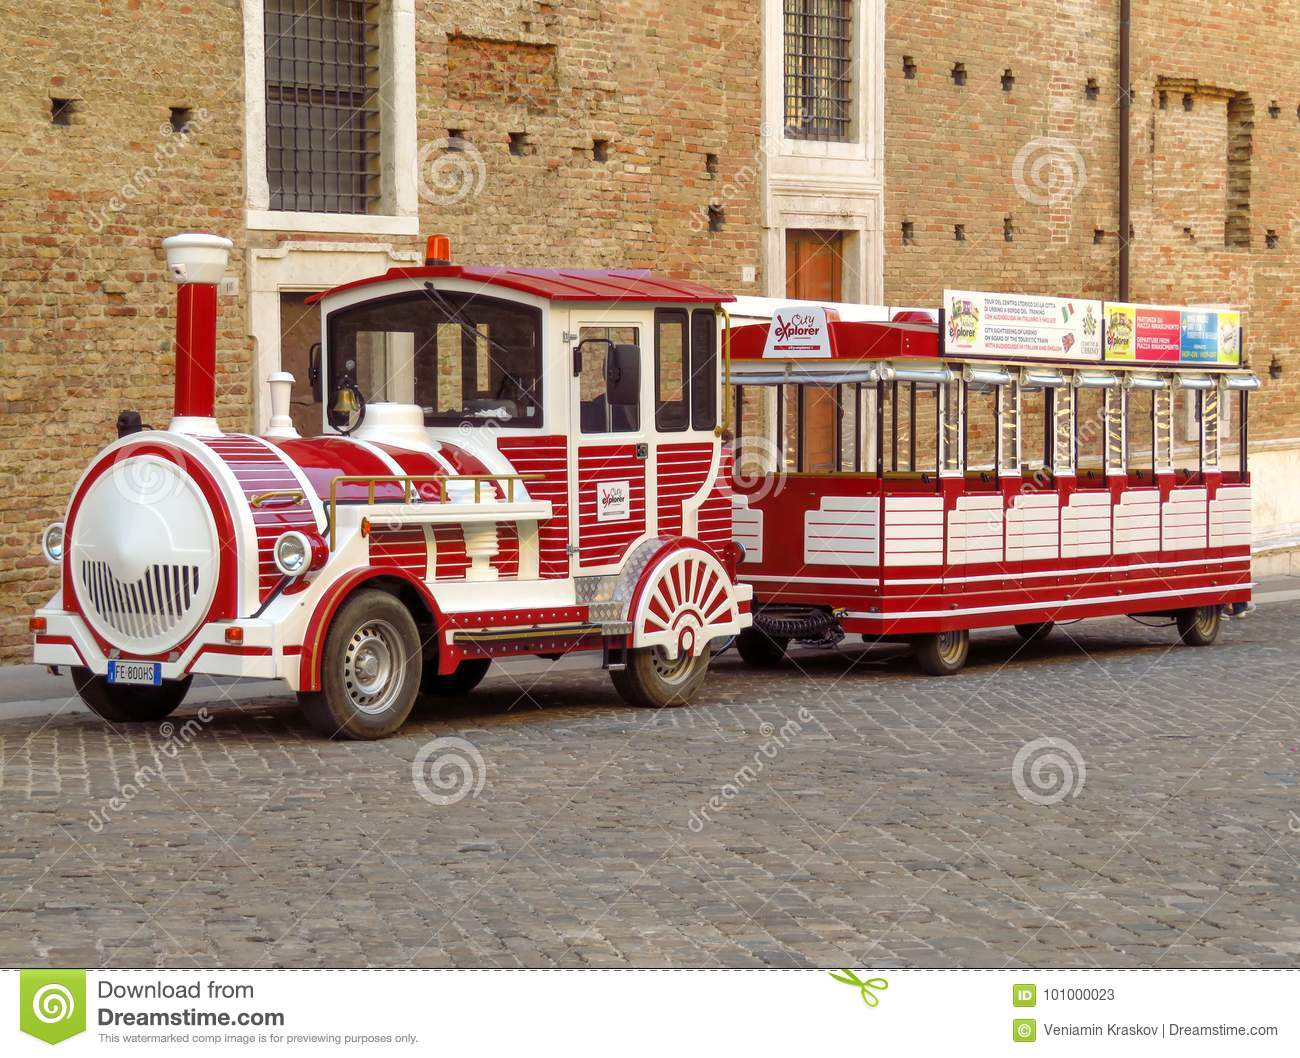 Urbino - Funny Steam Locomotive Editorial Stock Photo - Image of ...